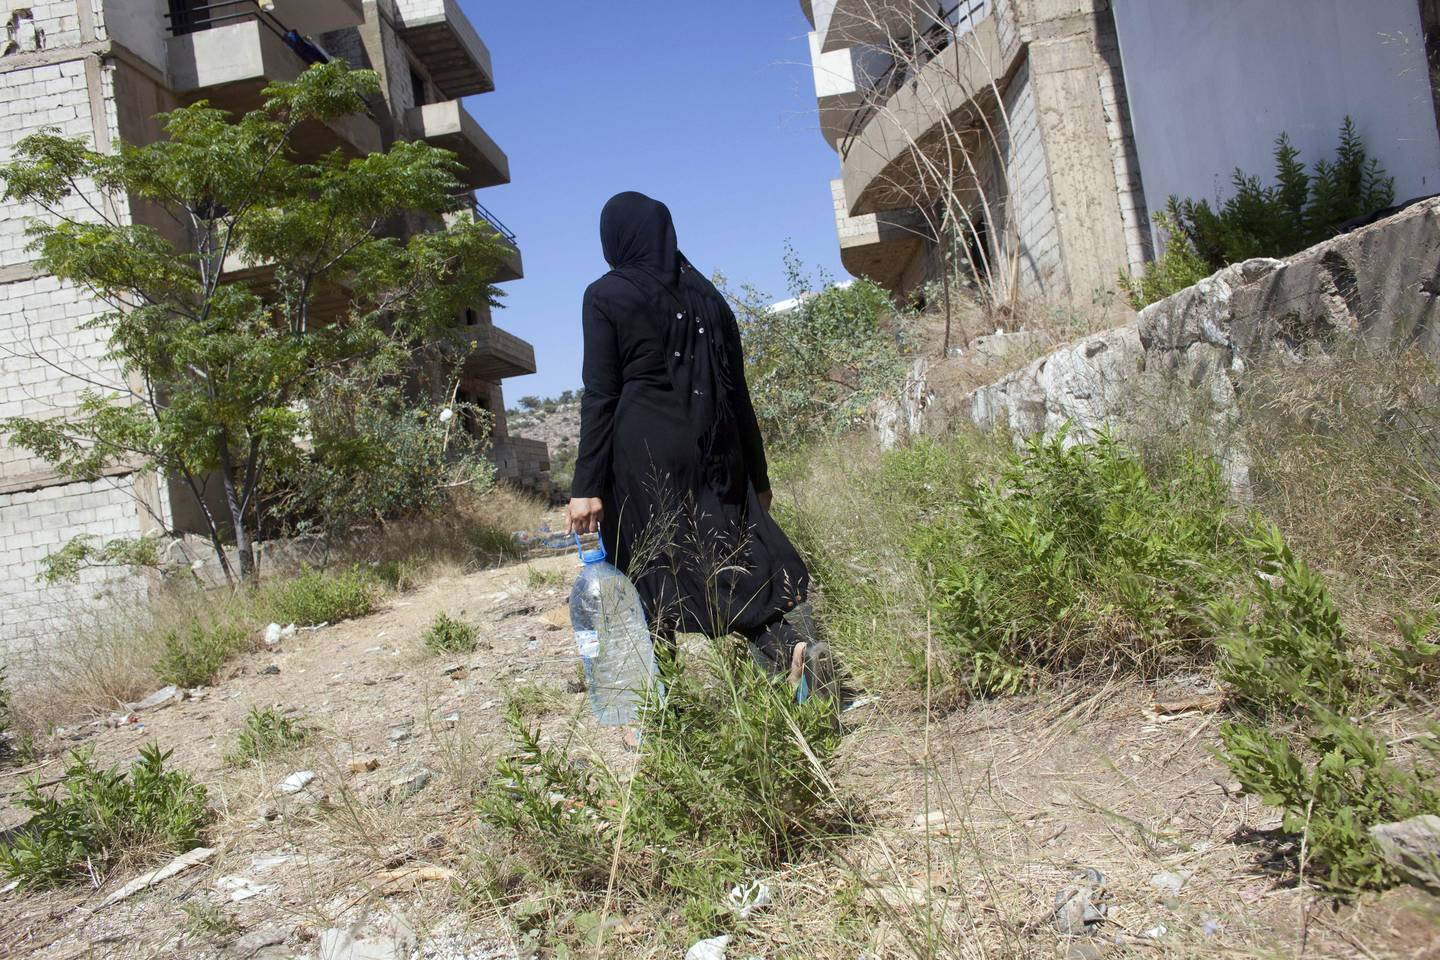 05/07/2013 near Damour, Lebanon: A Syrian mother collects water for cooking. Many of the flats in the vacation-home development lack basics like electricity and running water. Estimates have placed the number of Syrian refugees in Lebanon at well over 500,000 people. *** Local Caption ***  06292013_LM_SyrianRefugees-118.jpg